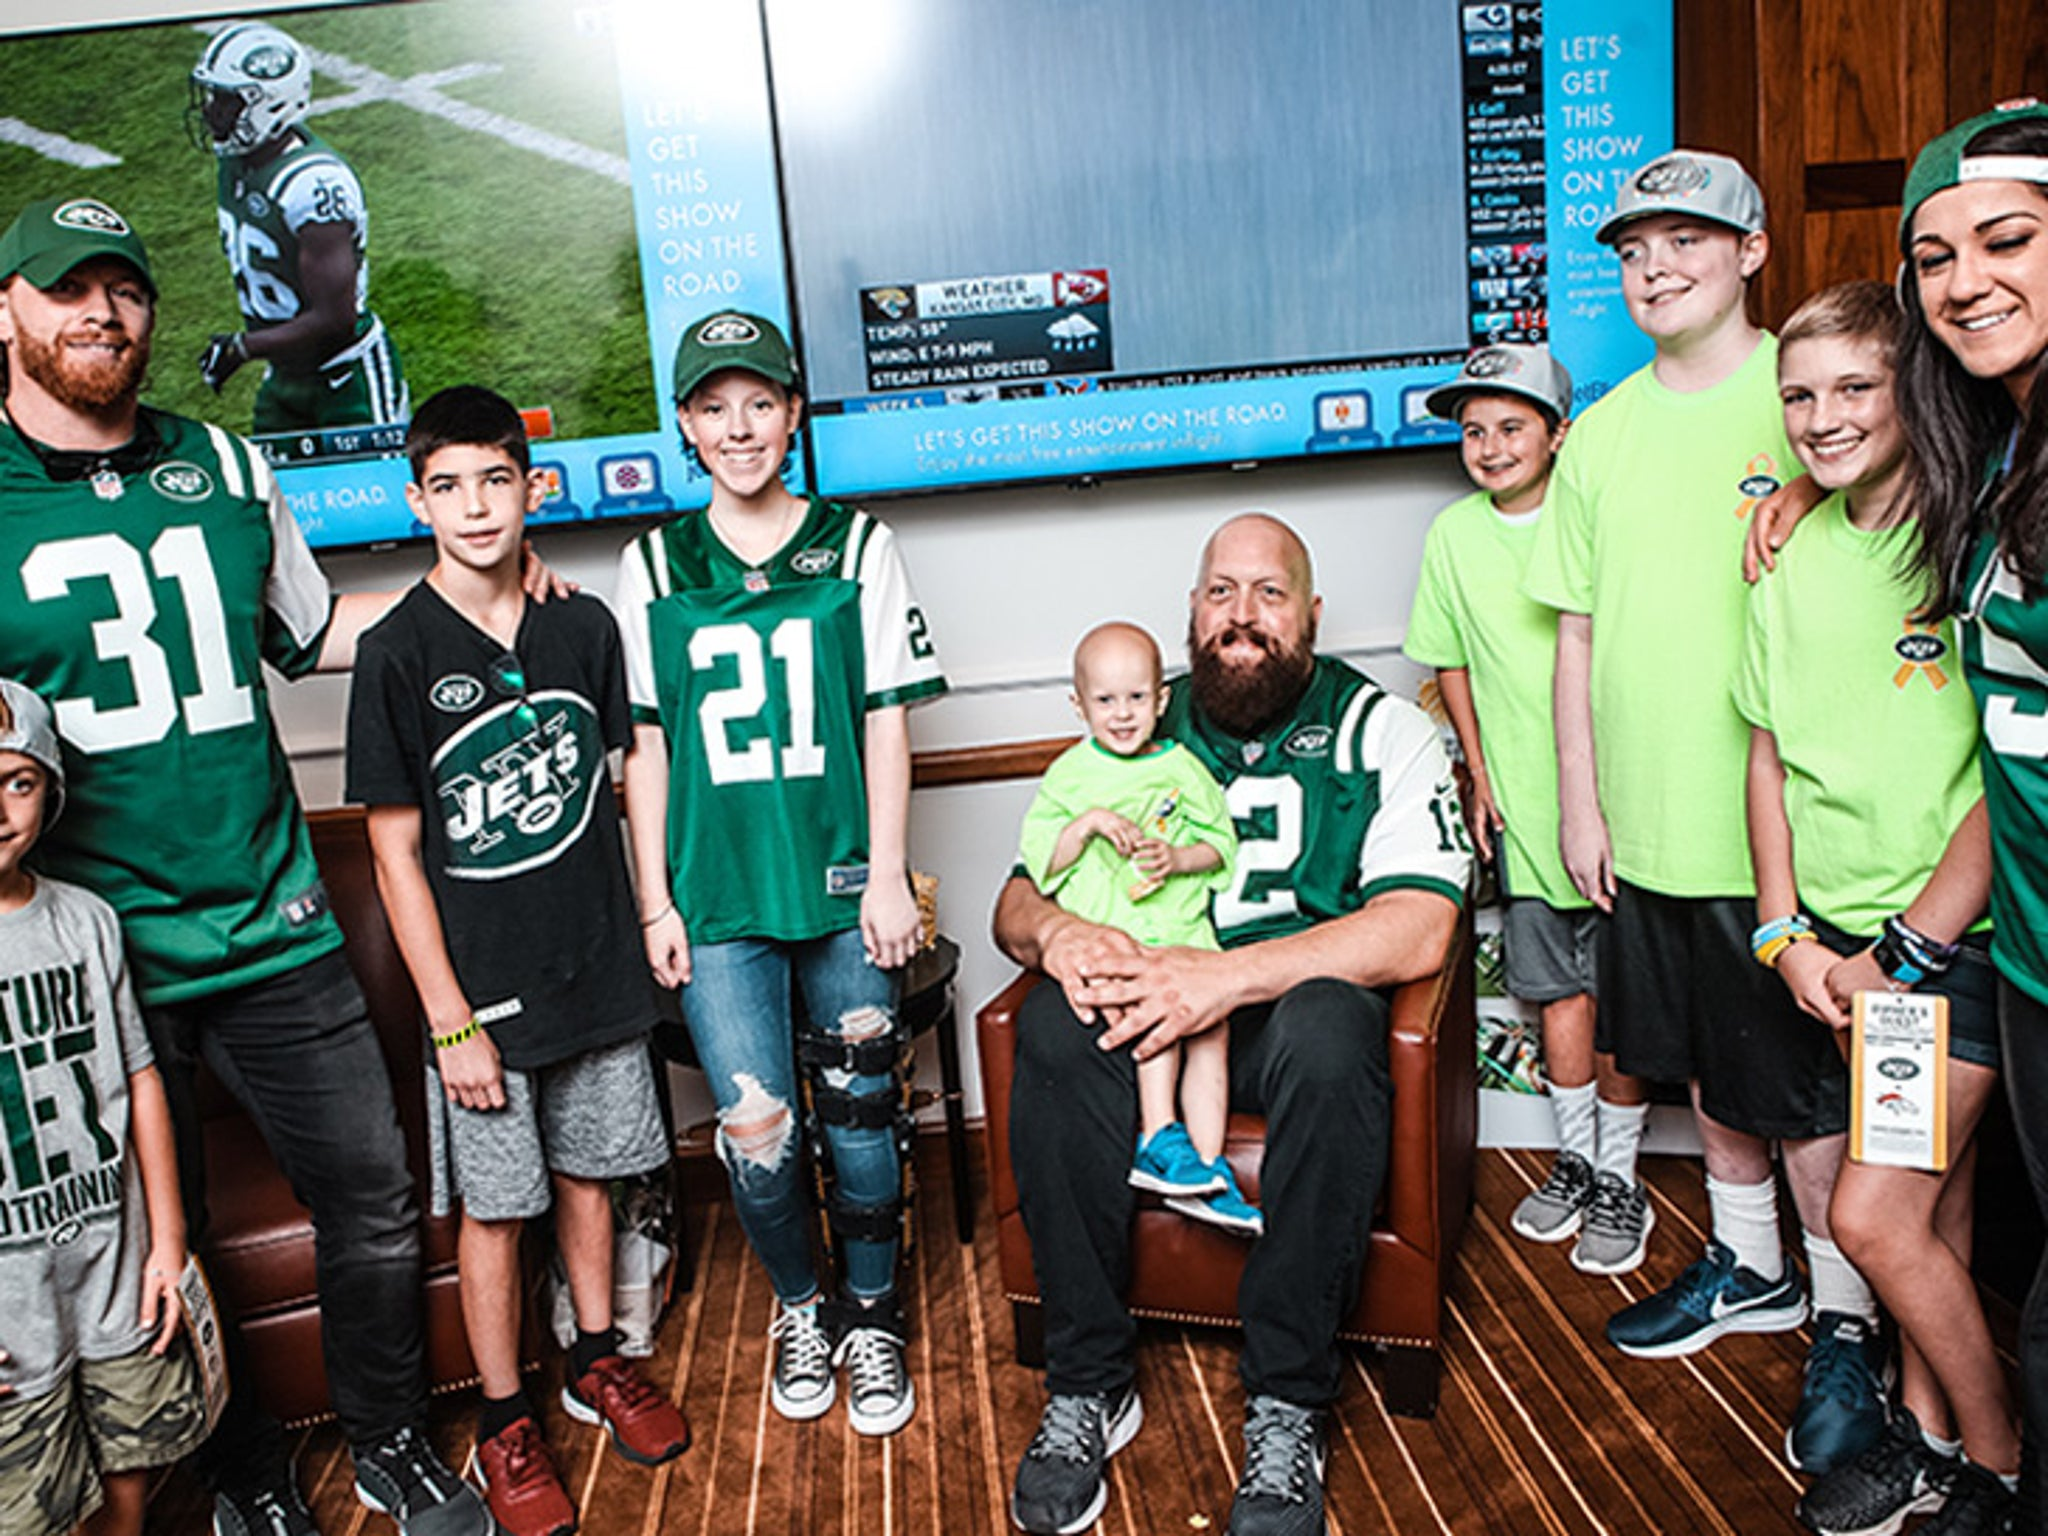 d32a6012 WWE's Big Show Hits NY Jets Game, Helps Kids Fight Cancer